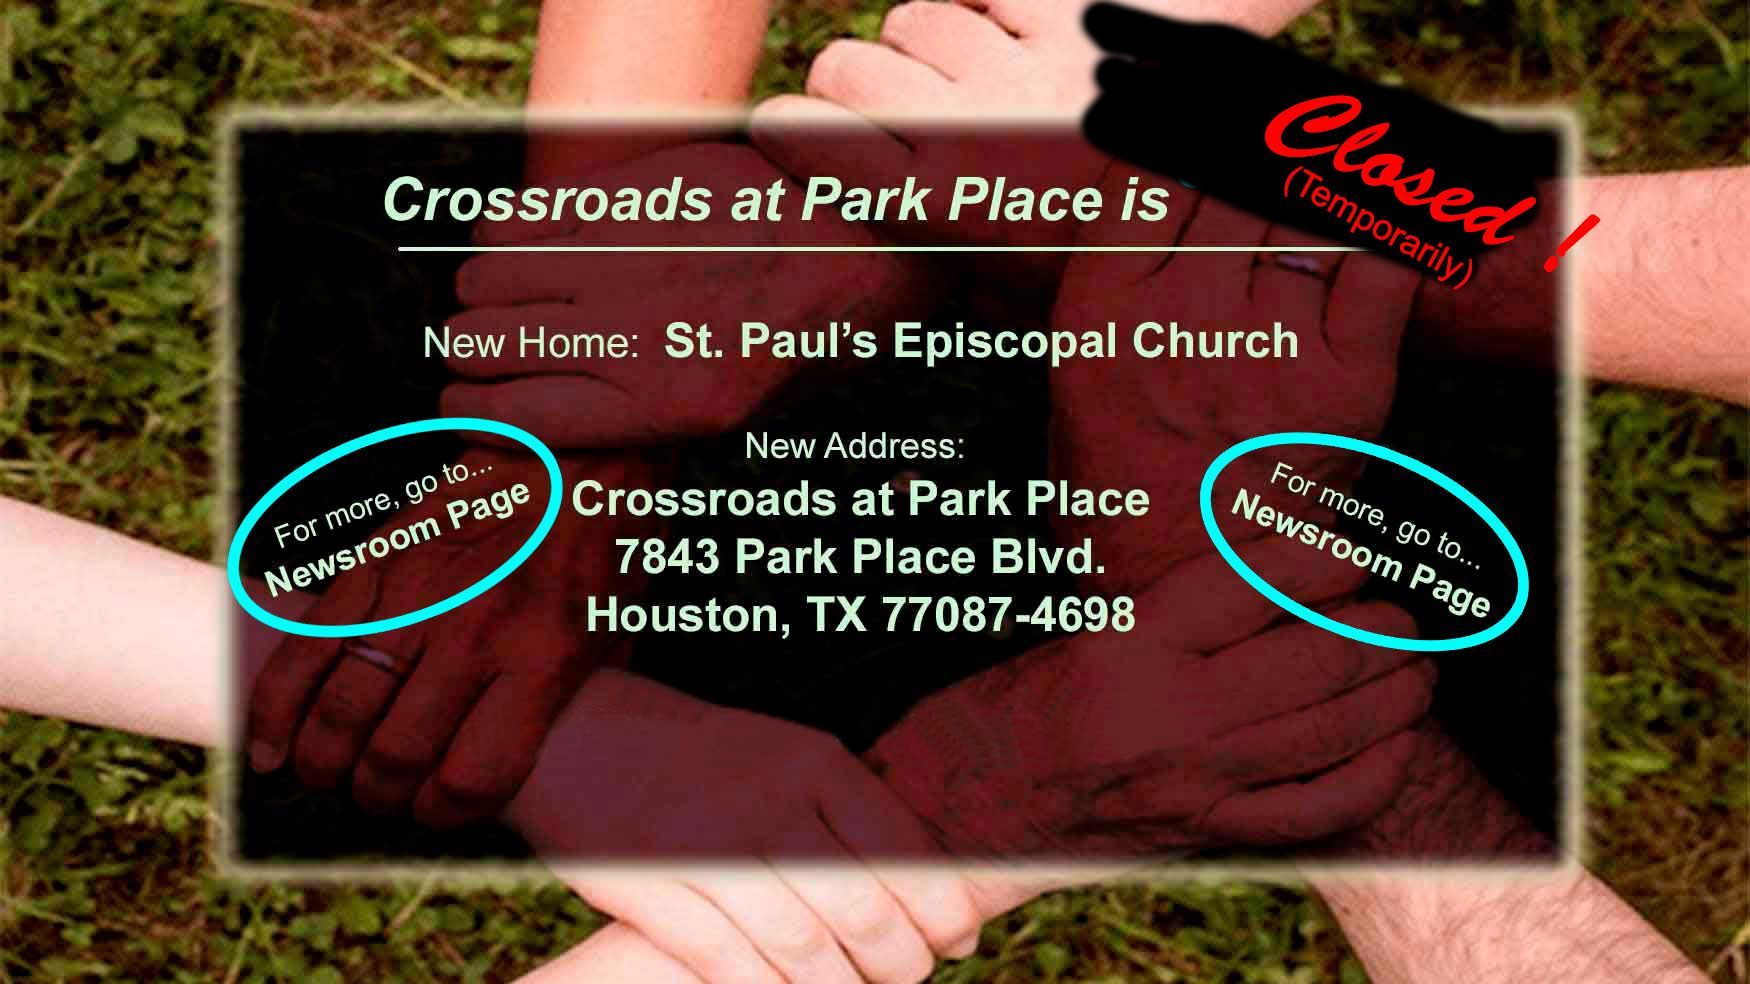 Crossroads at Park Place is Closed Temporarily